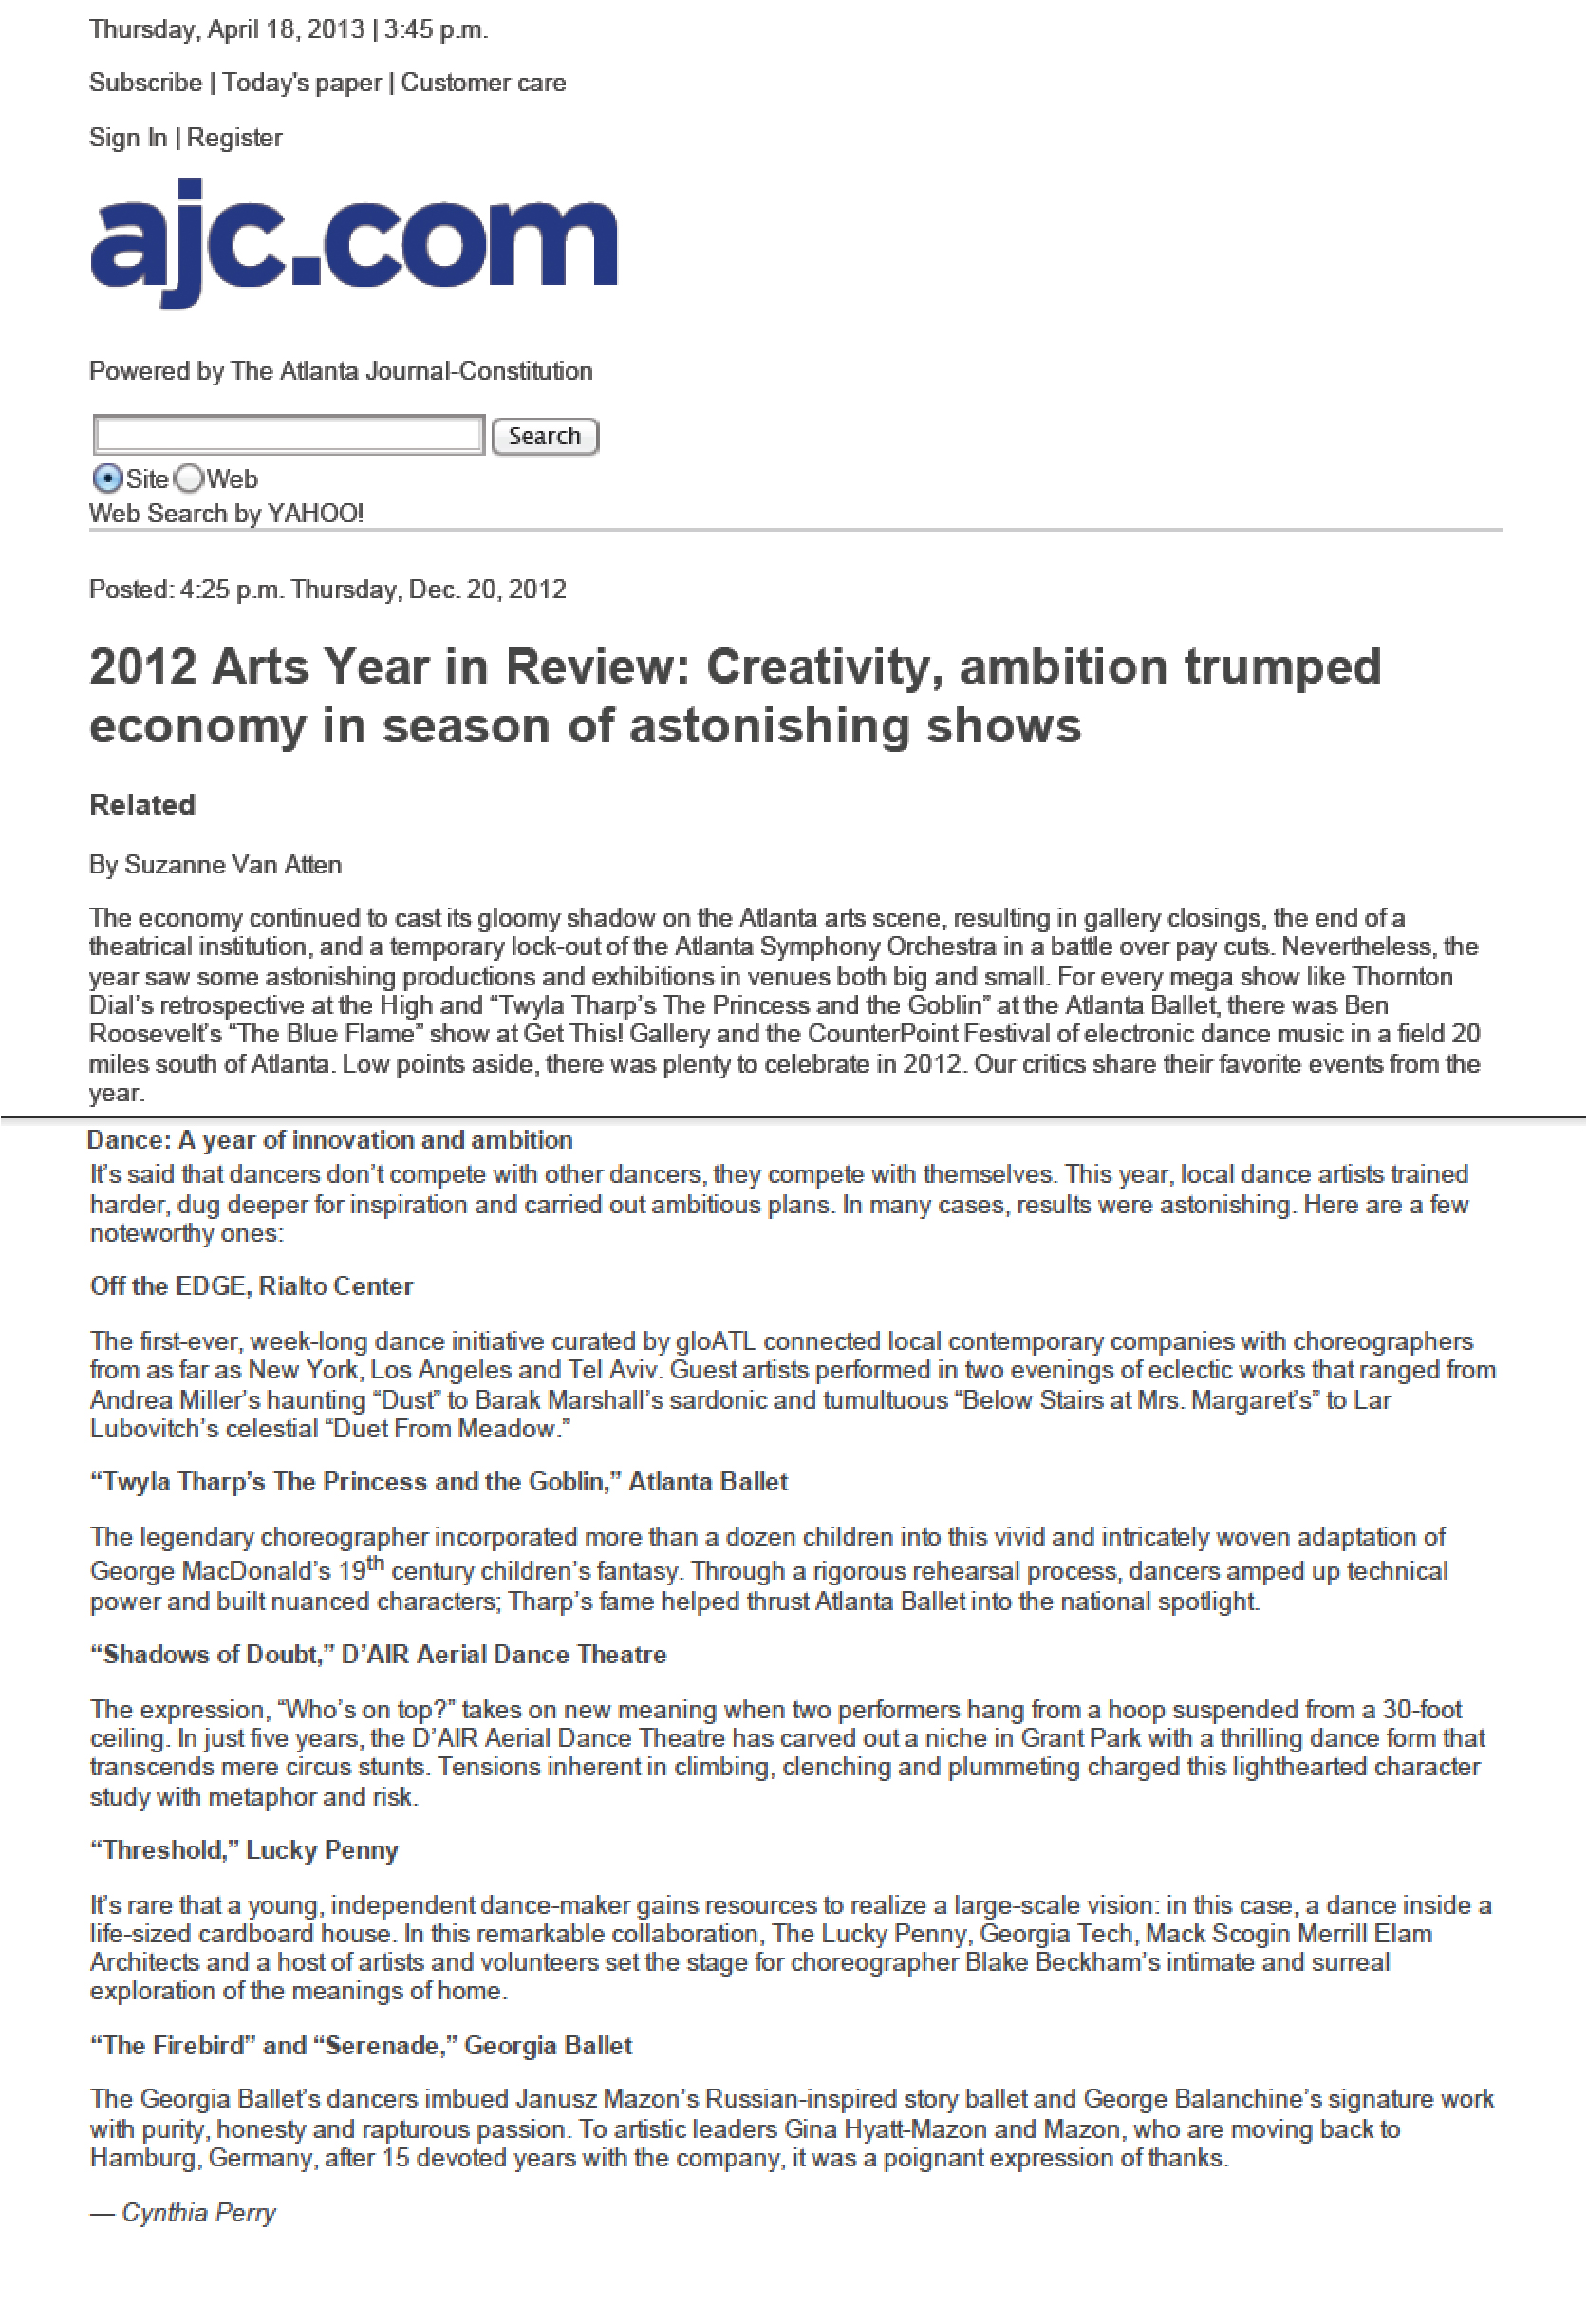 Previewof2012 Arts Year in Review_ajc.jpg